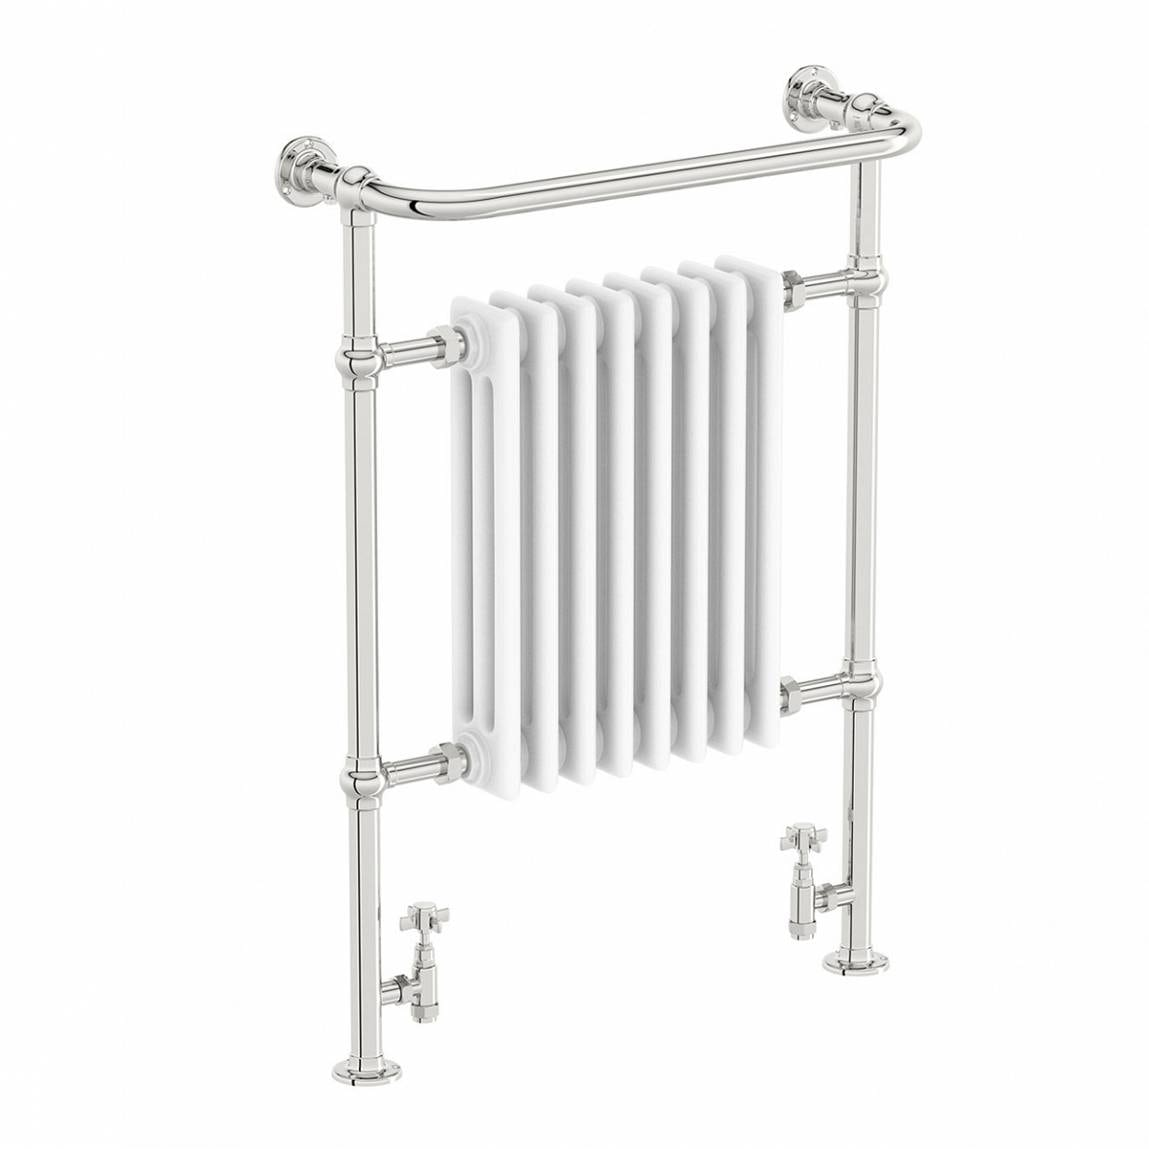 The Bath Co. Dulwich traditional radiator 952 x 659 offer pack